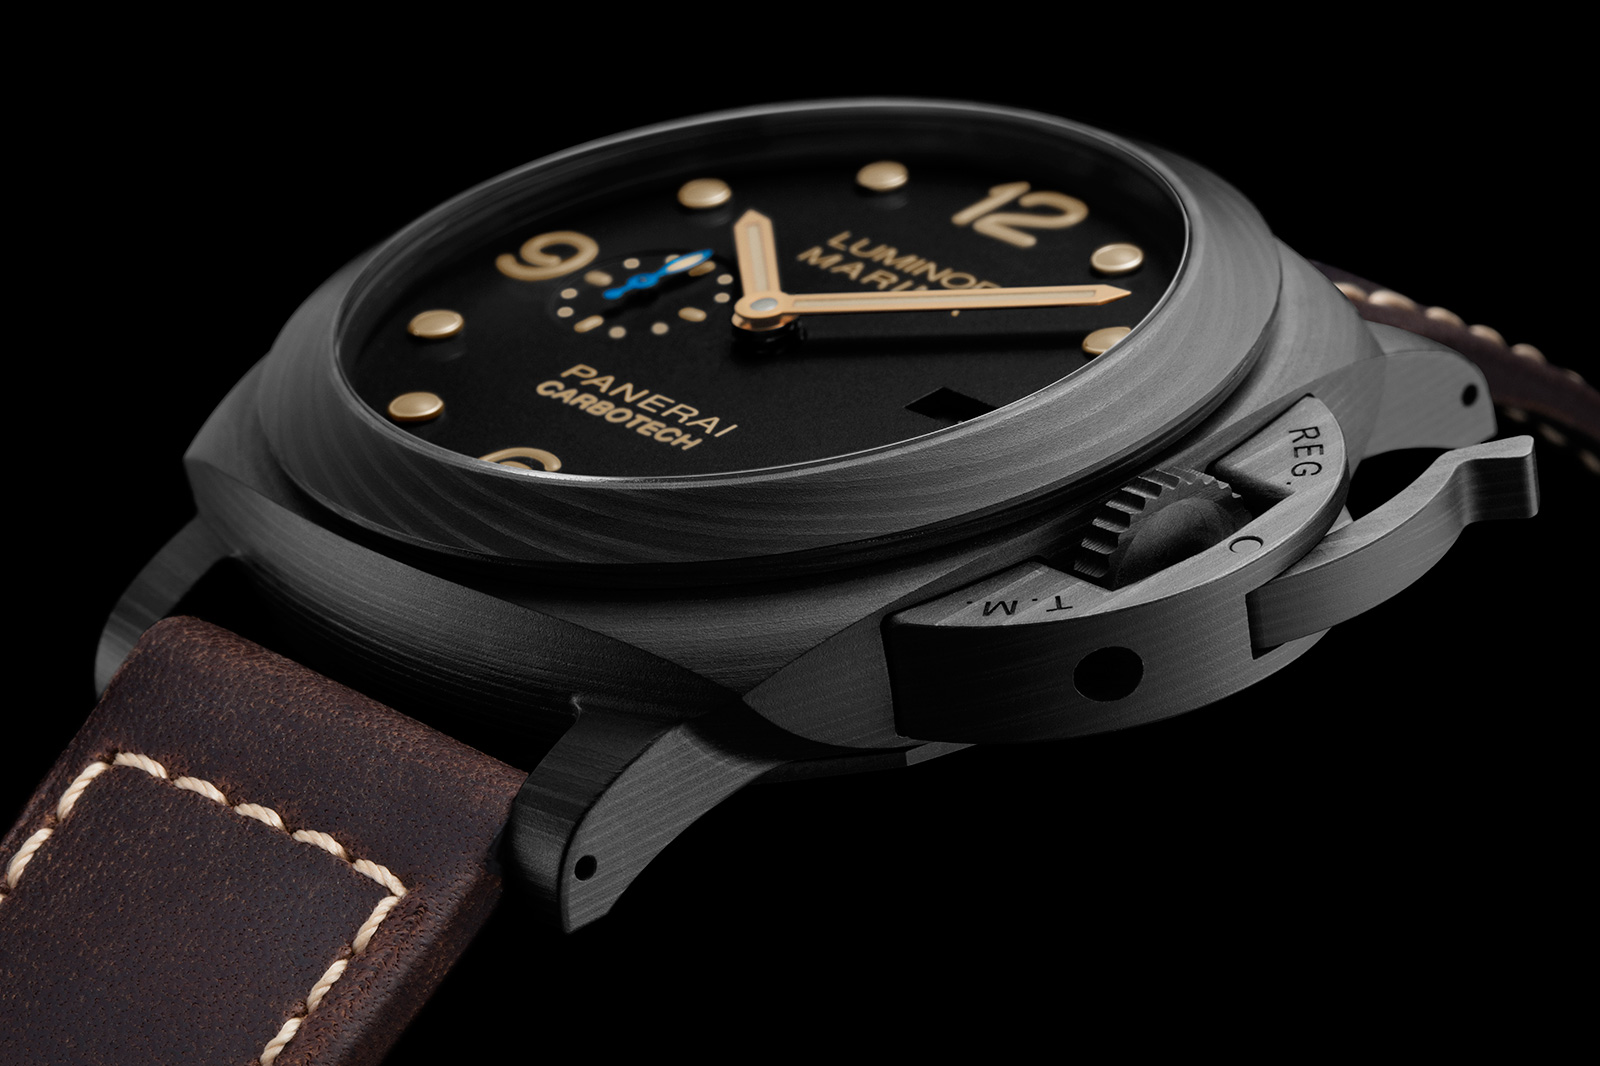 NEW: Panerai Carbotech PAM 661, Luminor Due, and more ...